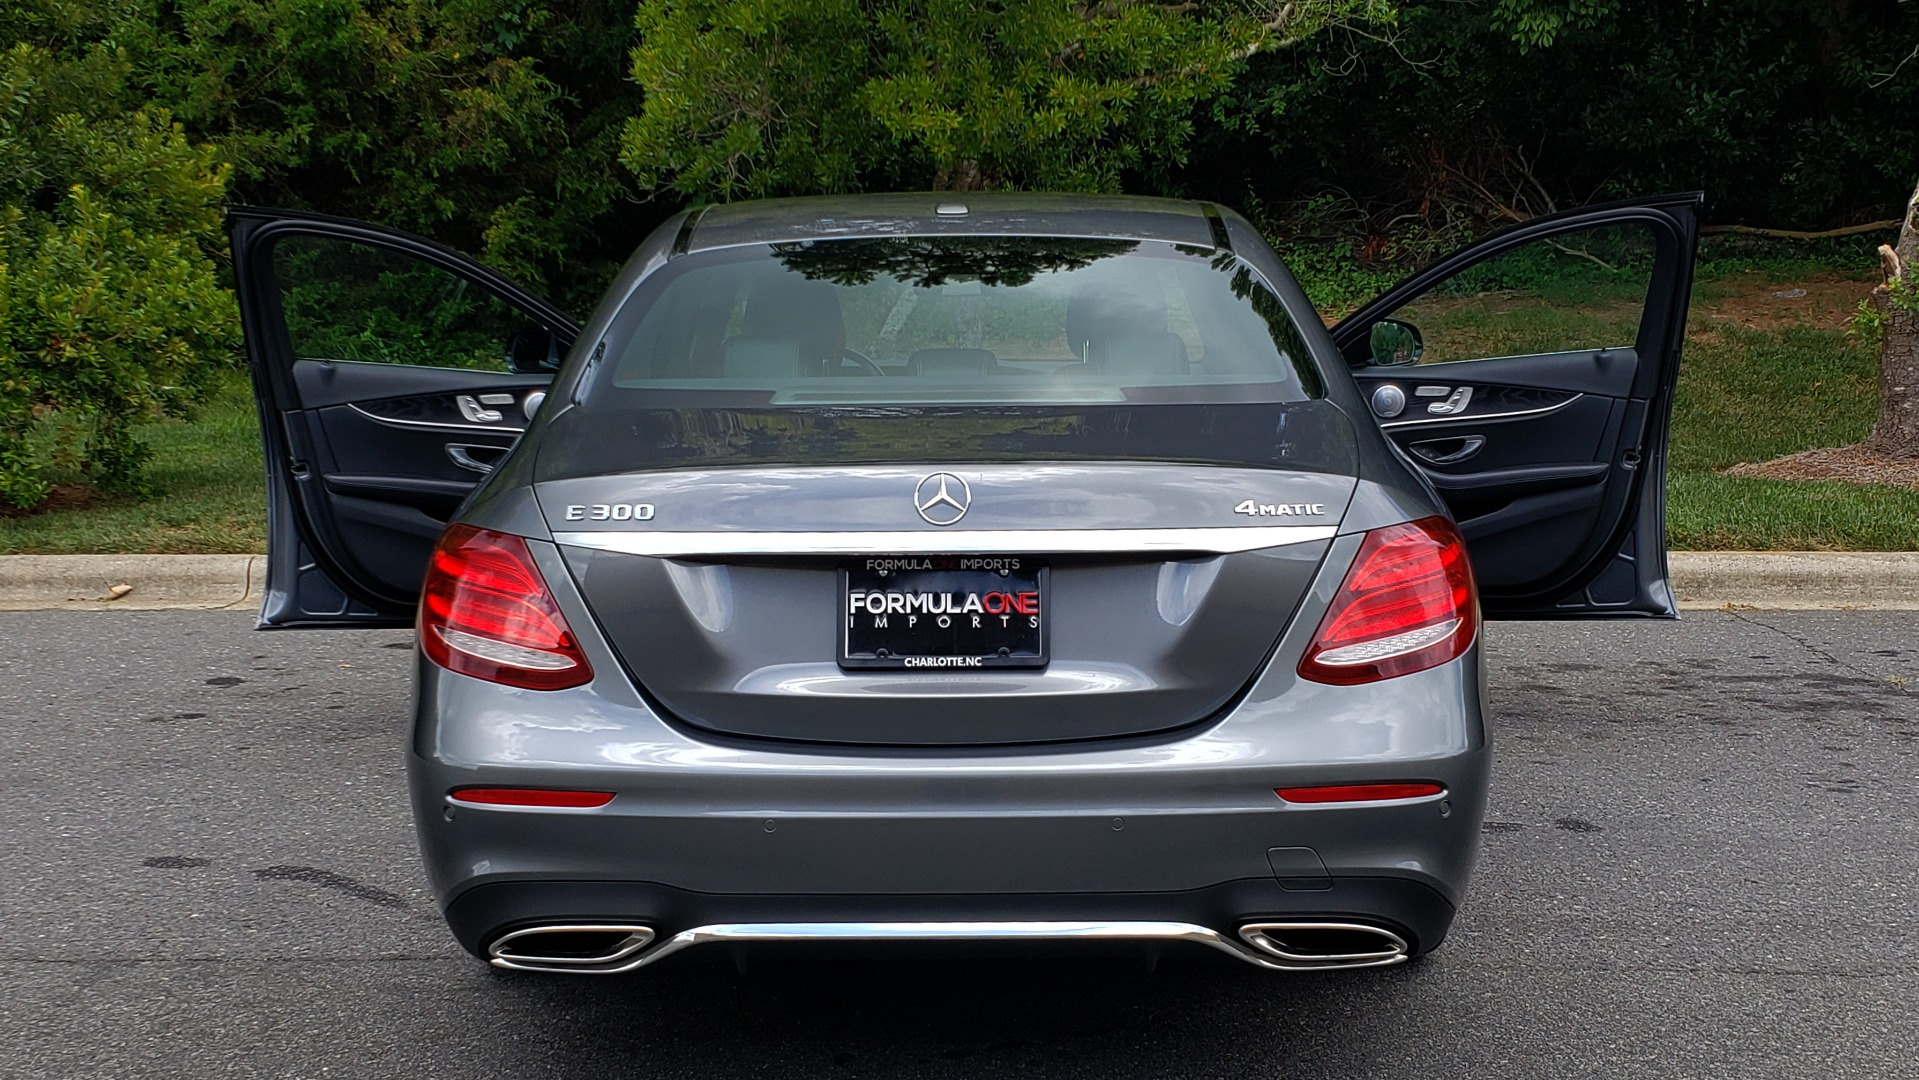 Used 2017 Mercedes-Benz E-CLASS E 300 SPORT 4MATIC / PREM PKG / NAV / SUNROOF / BURMESTER SND / REARVIEW for sale Sold at Formula Imports in Charlotte NC 28227 24